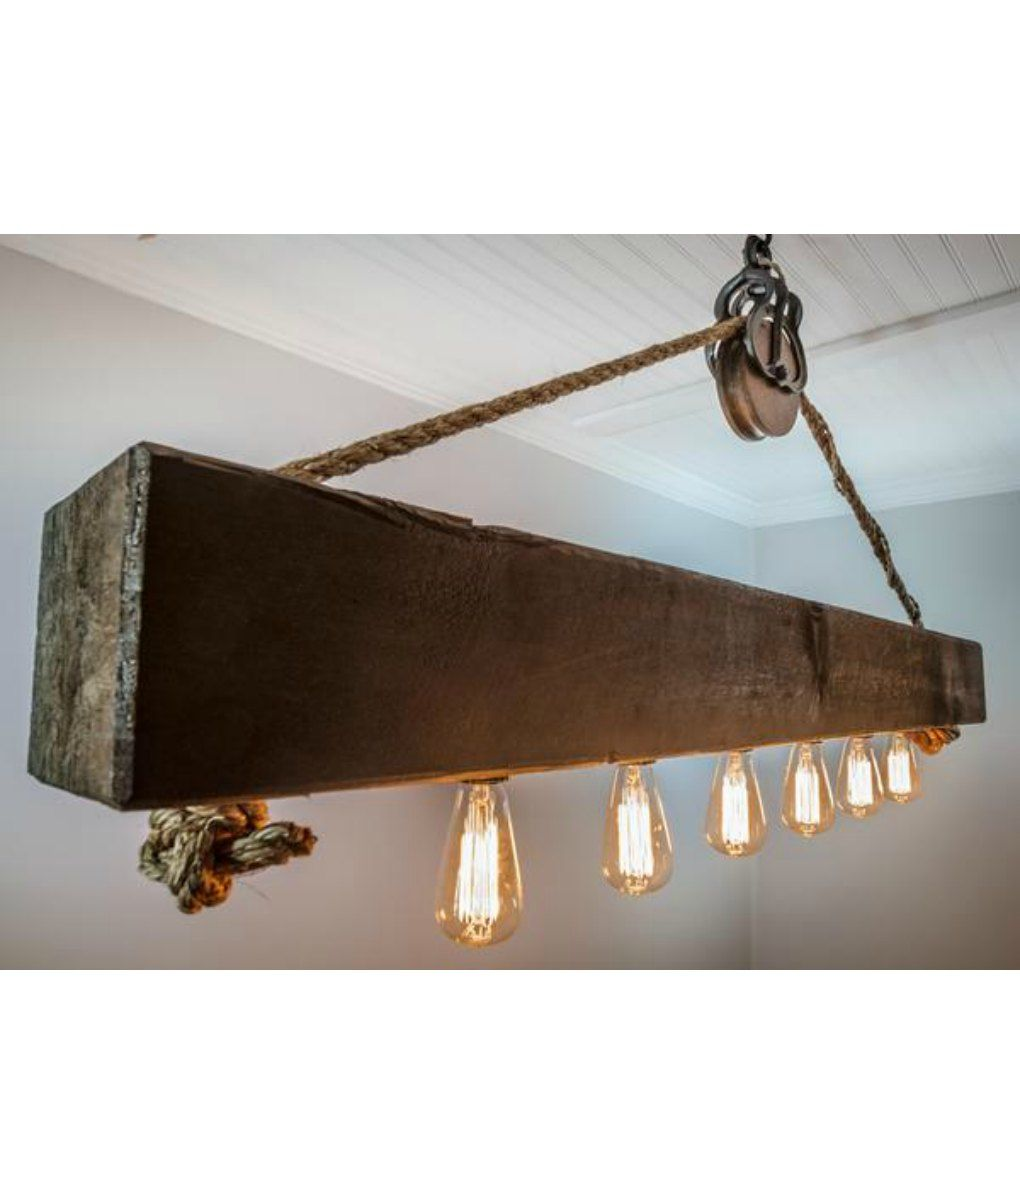 Rustic Wood Beam Chandelier With Edison Bulbs Rope And Pulley